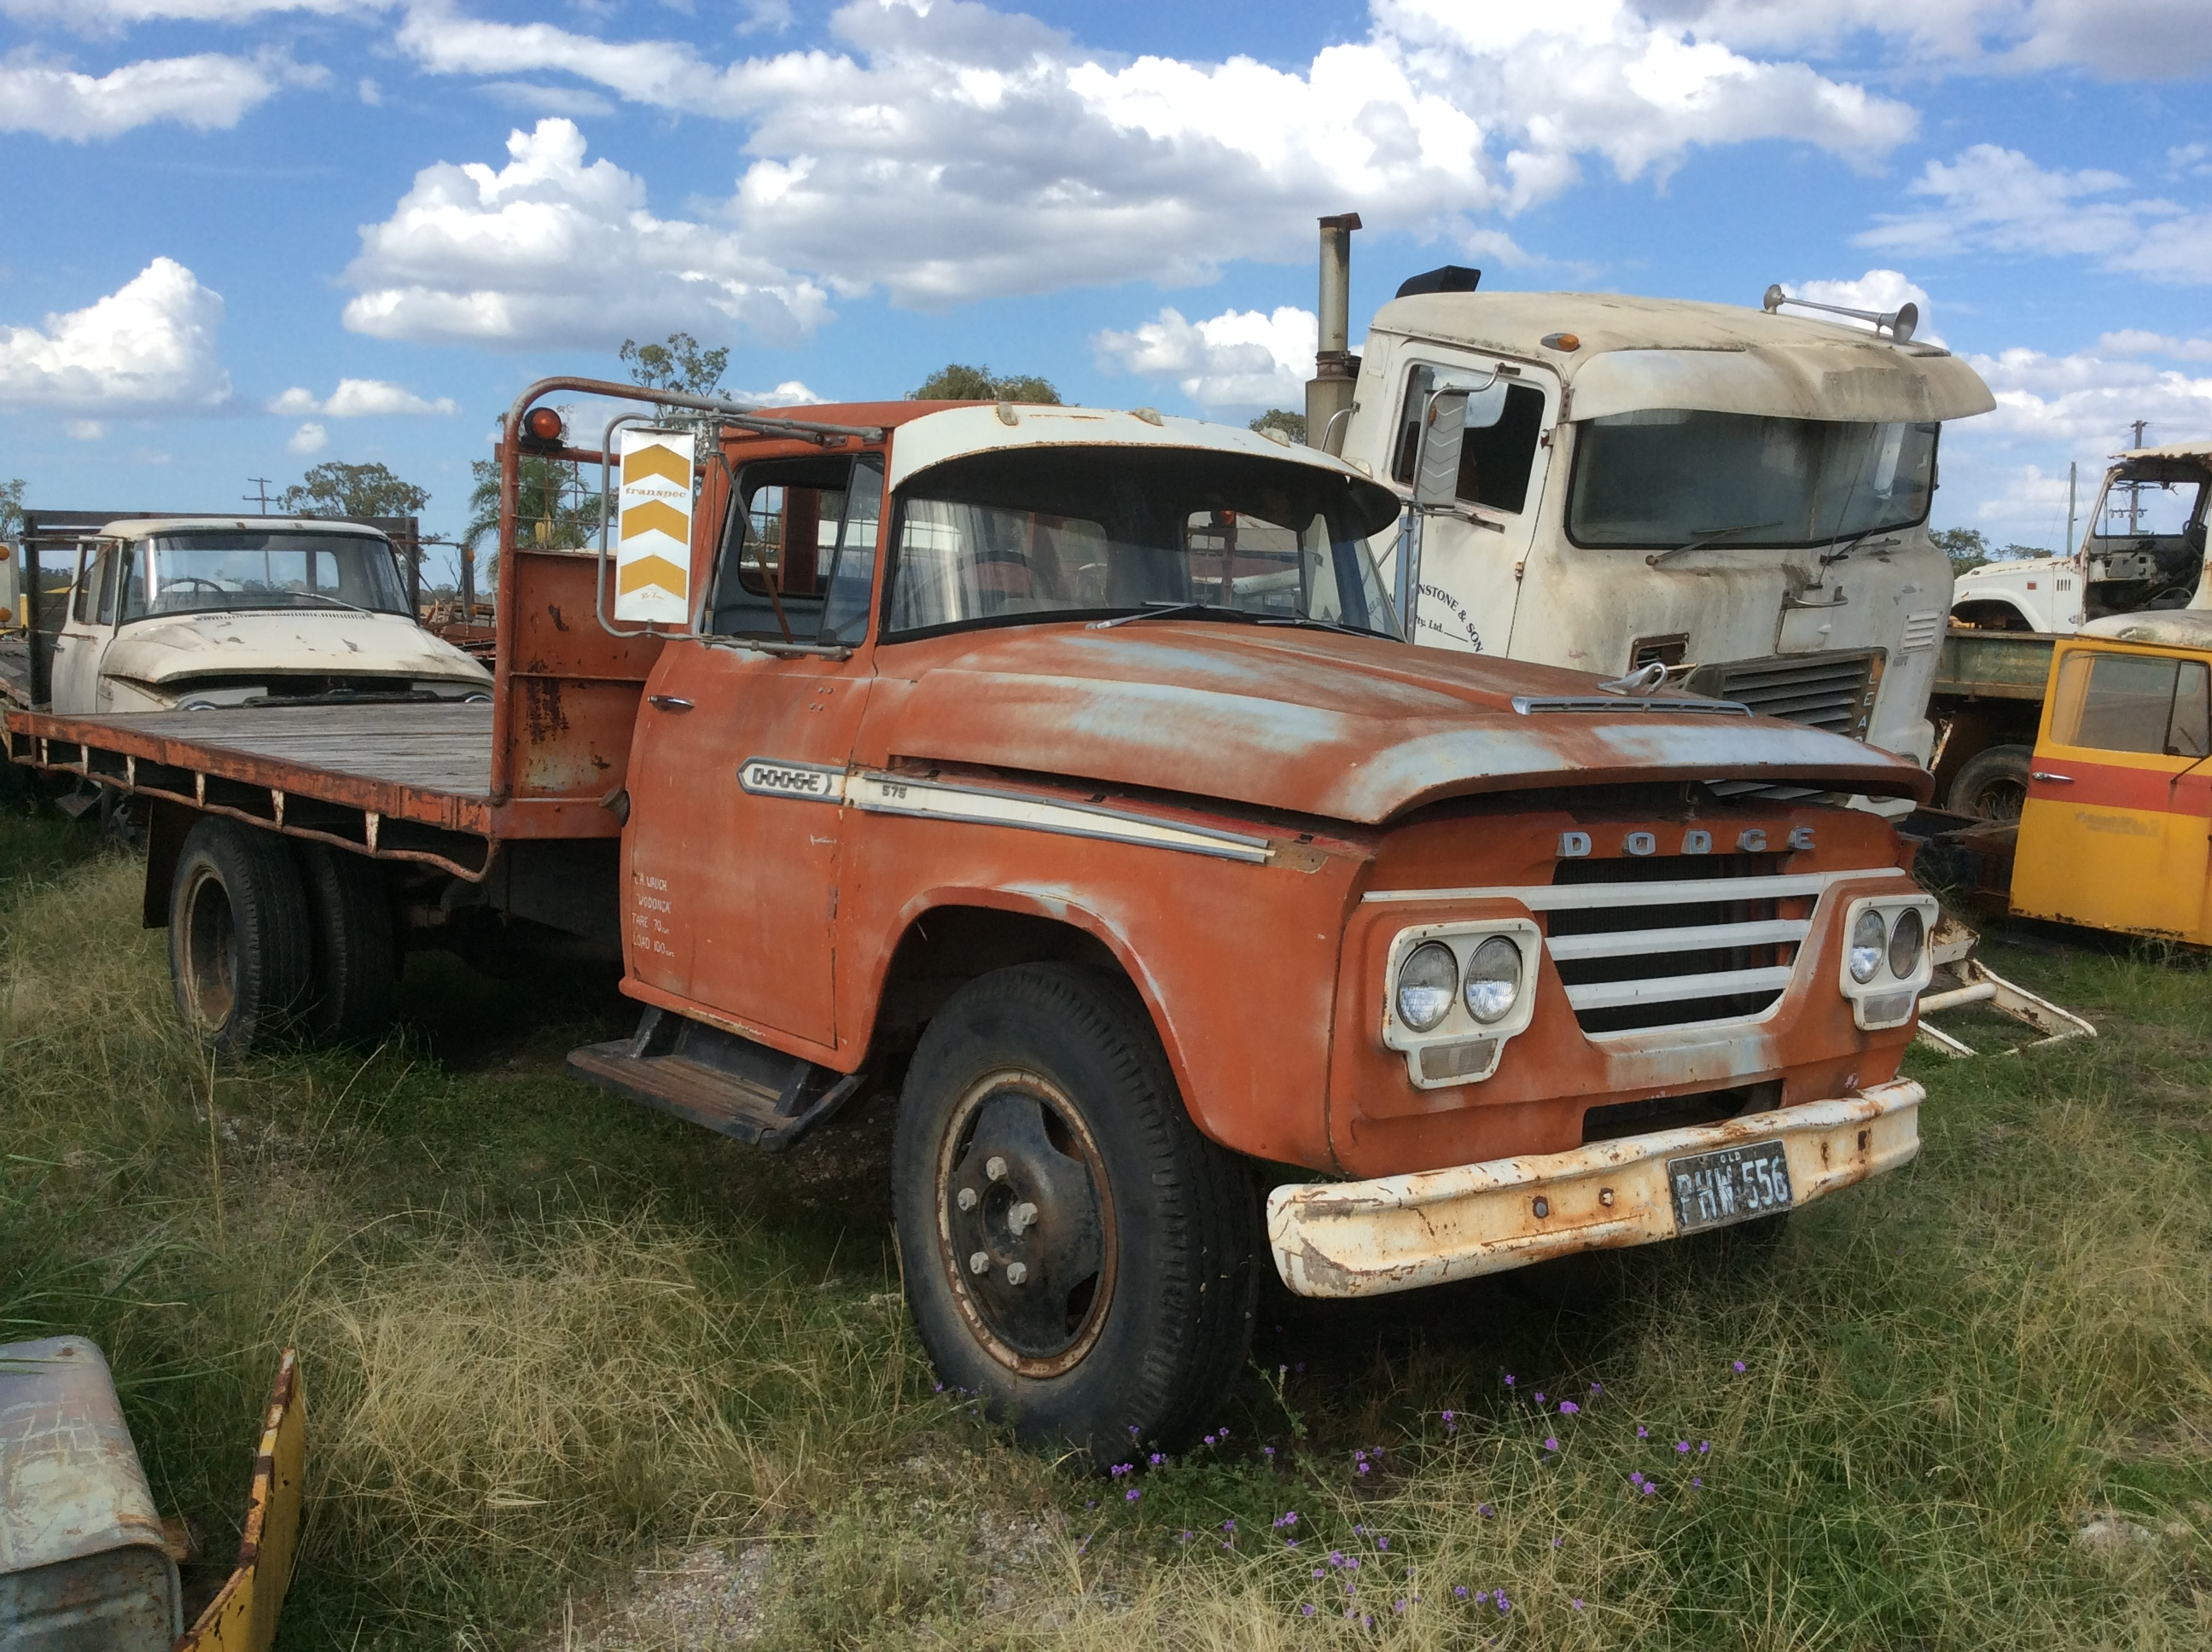 Dodge AT4 575 Truck - Truck & Tractor Parts & Wrecking